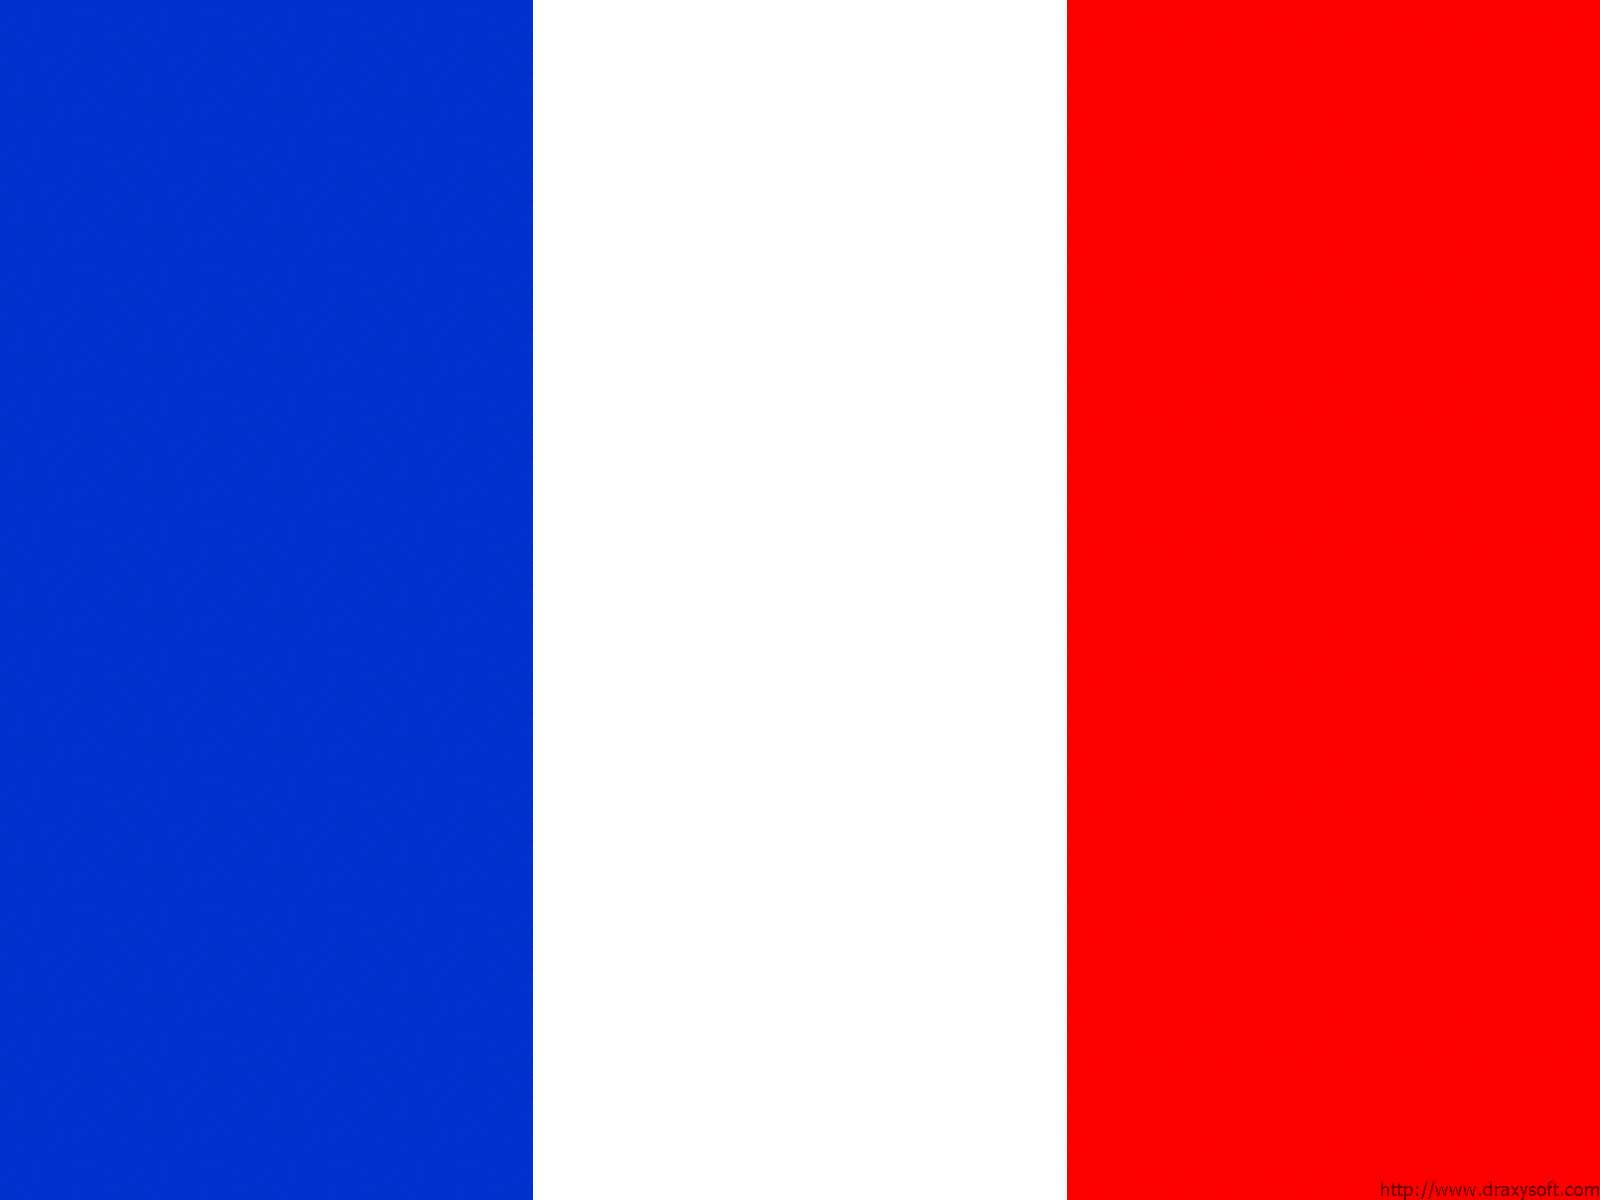 https://vignette.wikia.nocookie.net/potco-united-nations/images/c/cb/French_flag.jpeg/revision/latest?cb=20130325204015